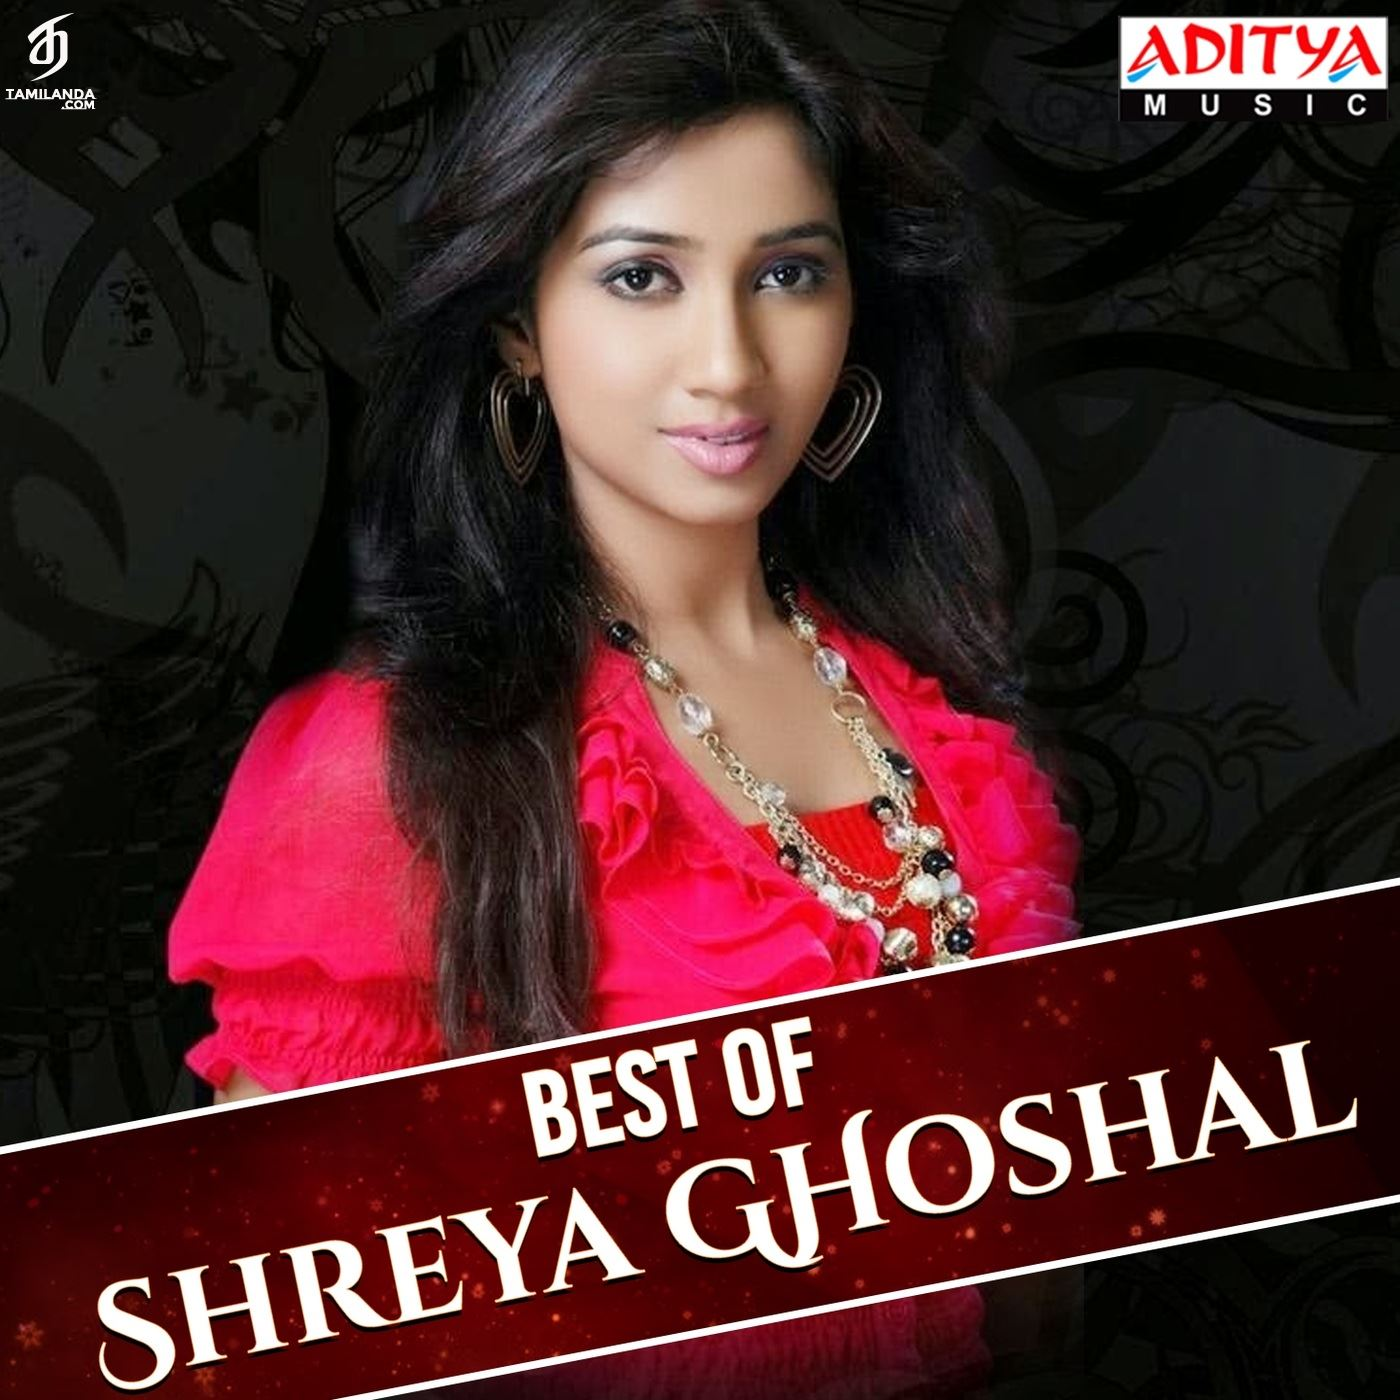 Best of Shreya Ghoshal (Telugu)